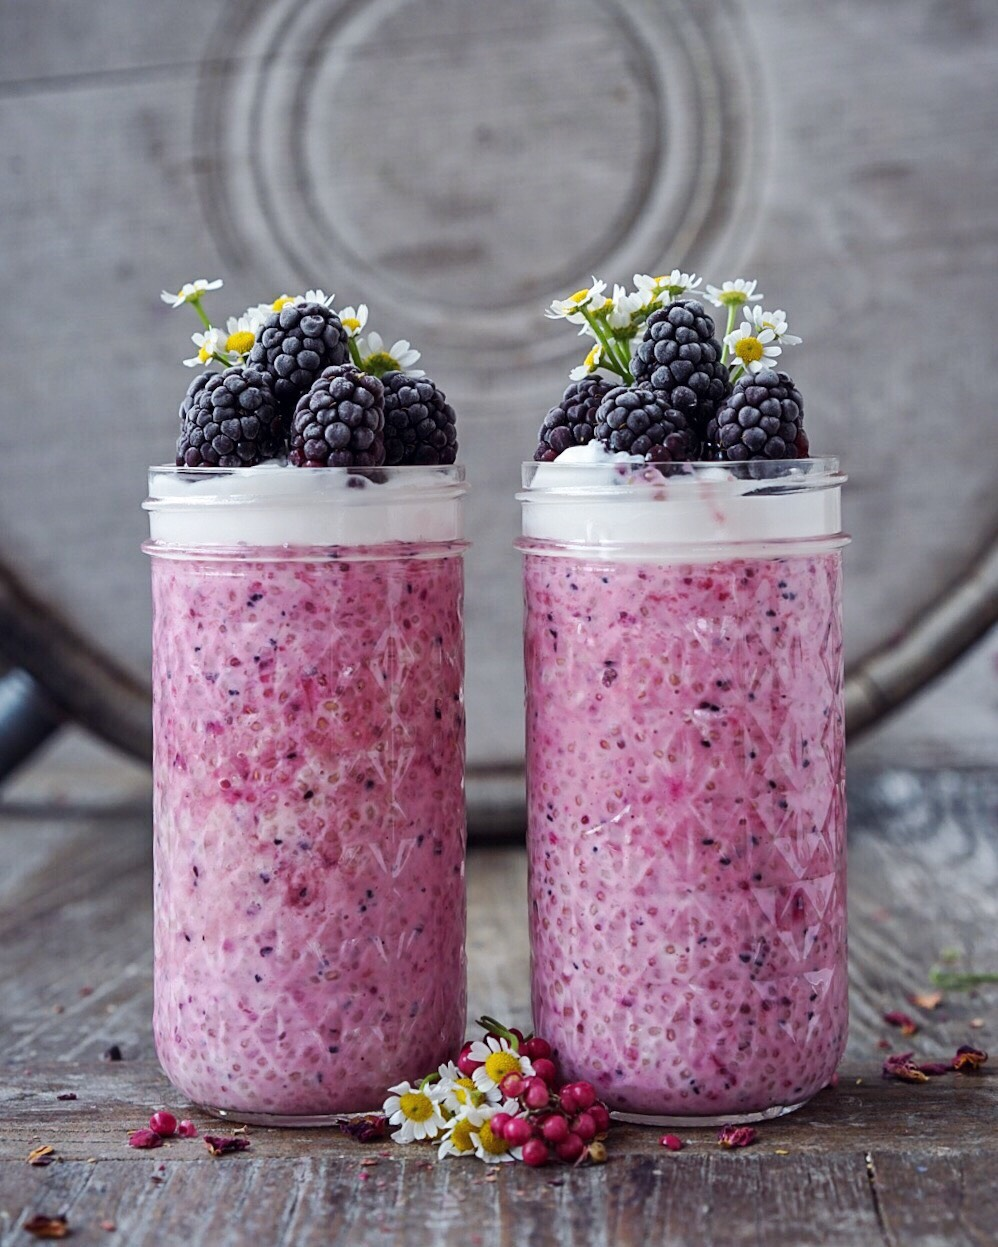 Pink Pitaya Chia Parfait, vegan und gluten-free, decorated with blackberries and edible flowers.